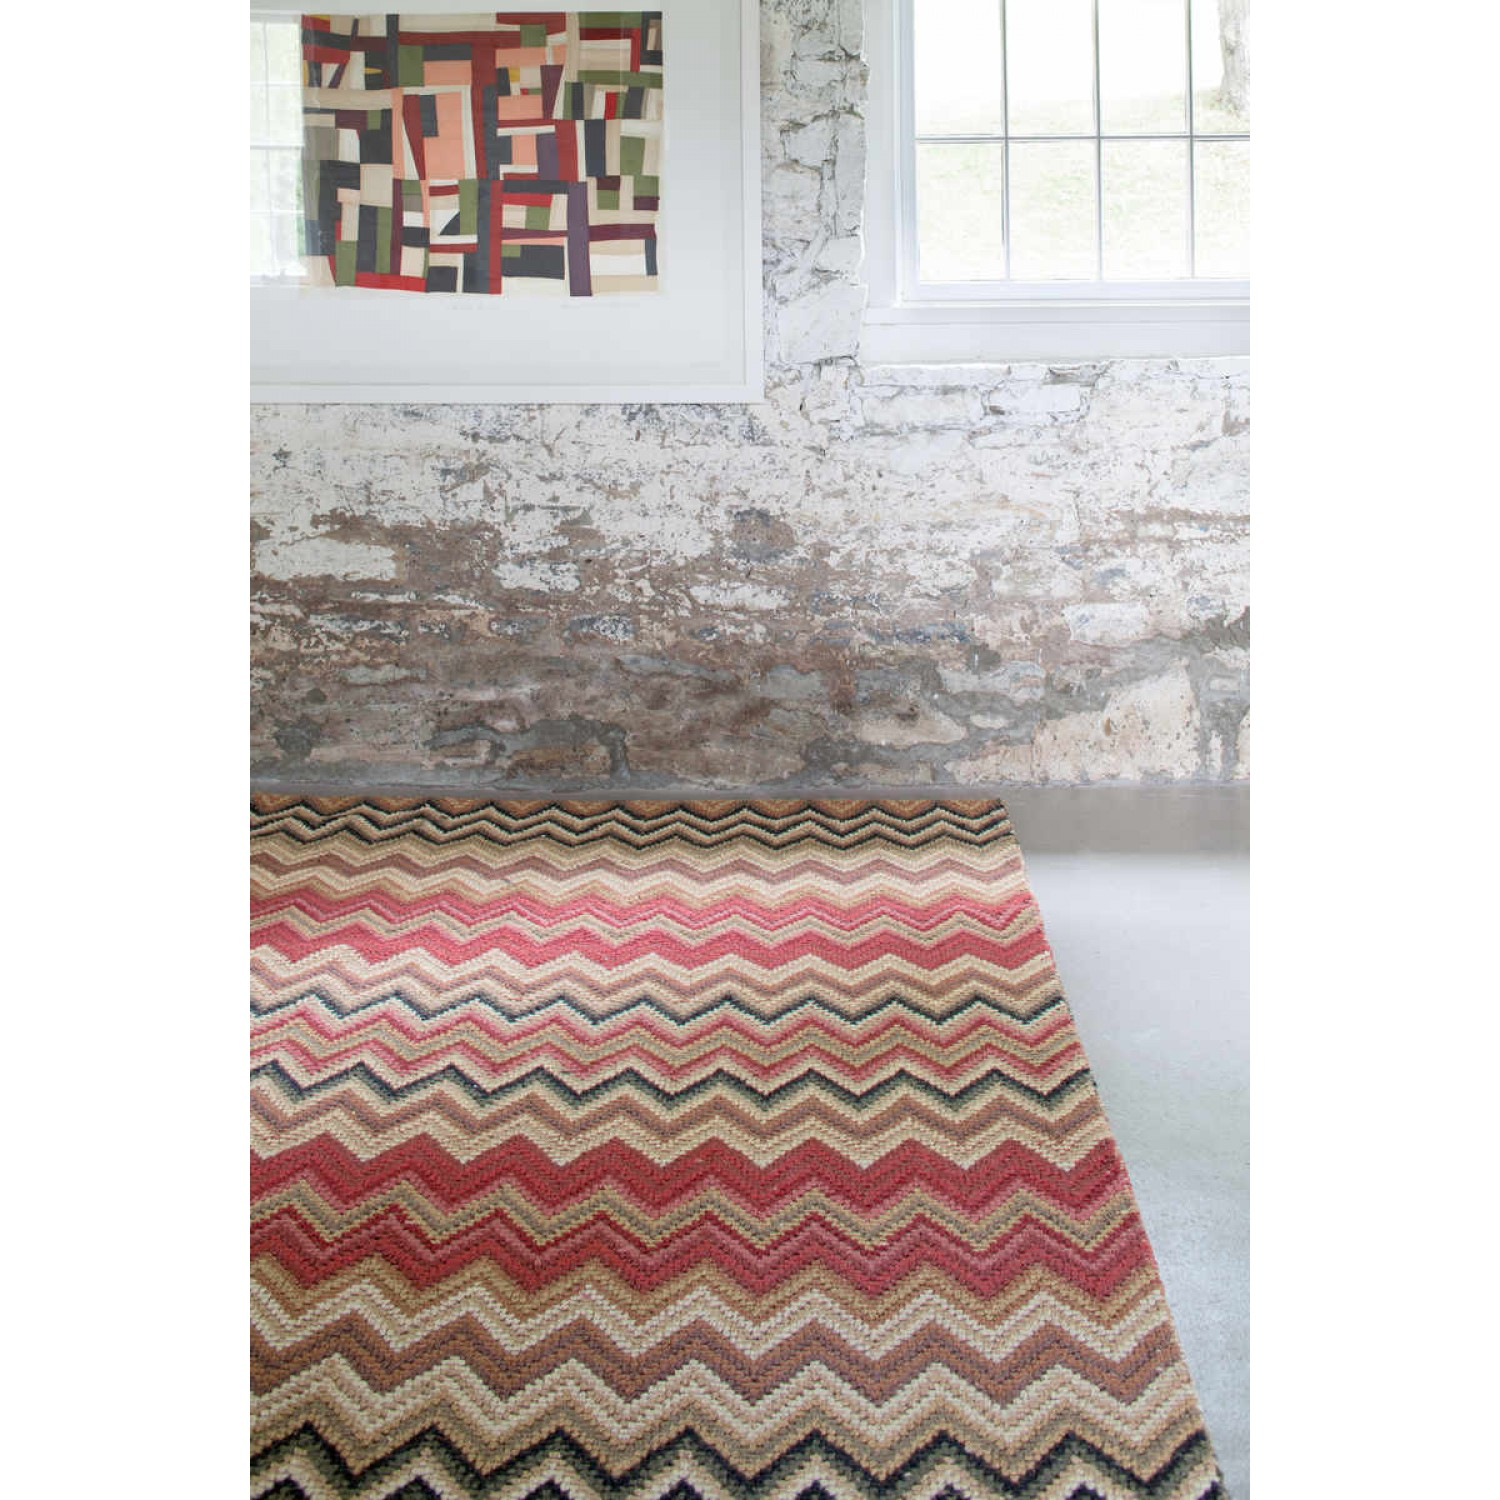 pretty Dash And Albert Rugs chevron multi micro hooked on white tile floor for living room decor ideas